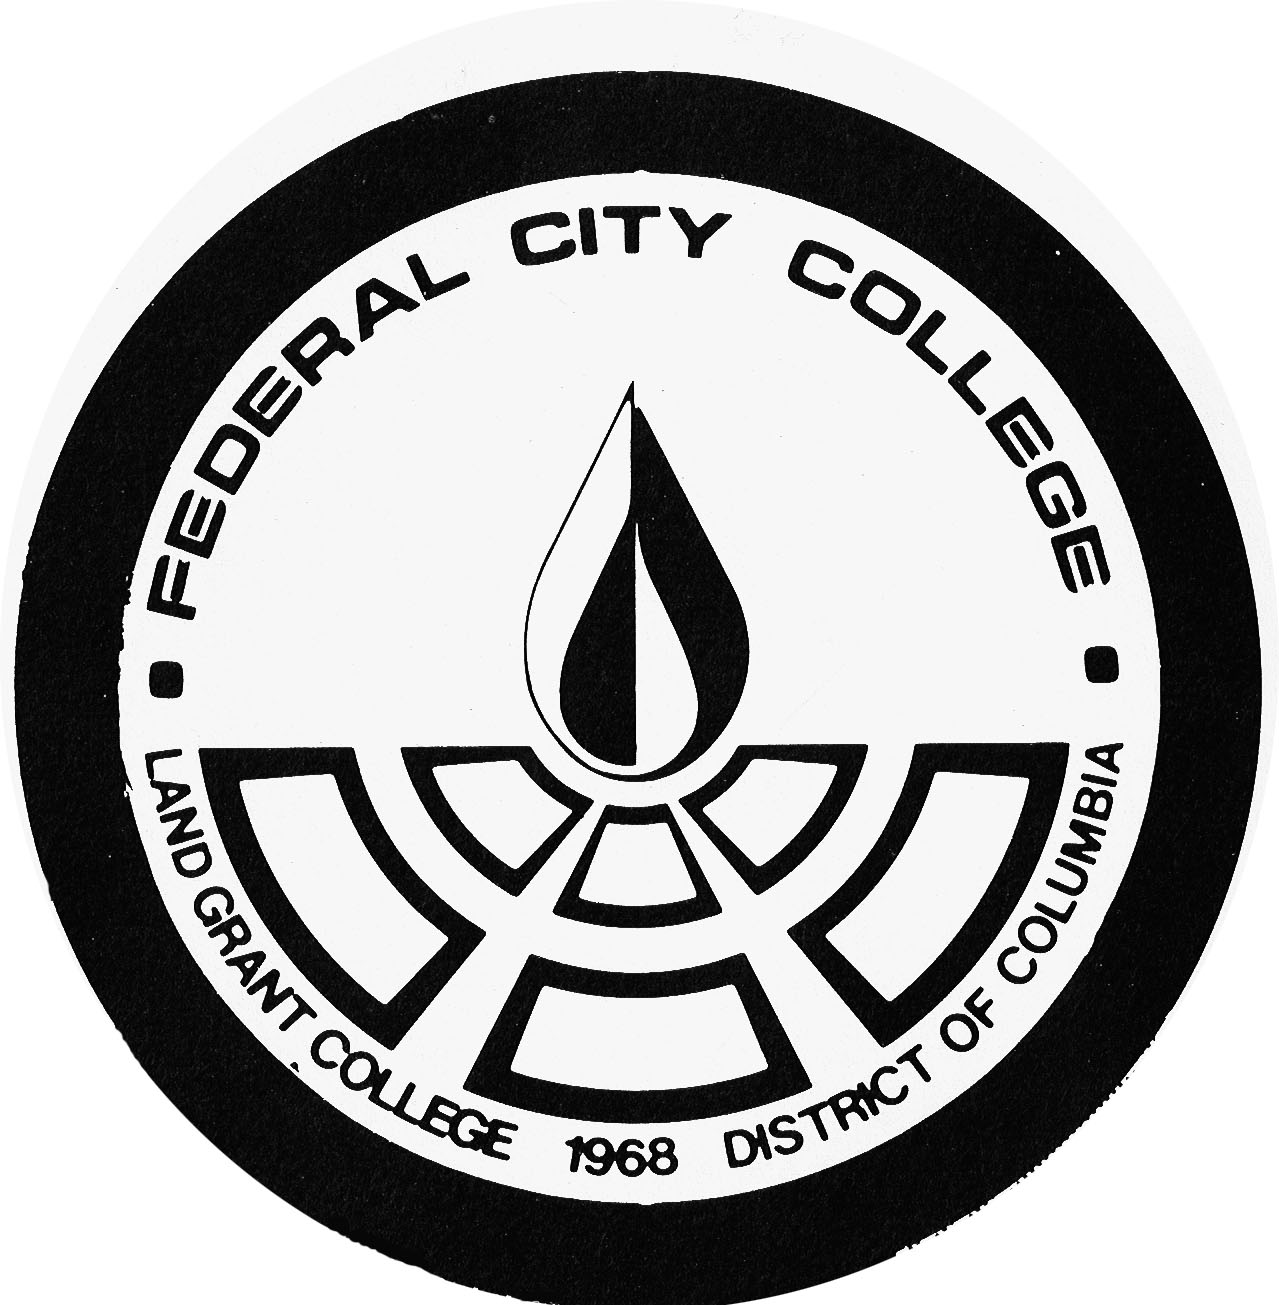 Federal City College -- College Seal